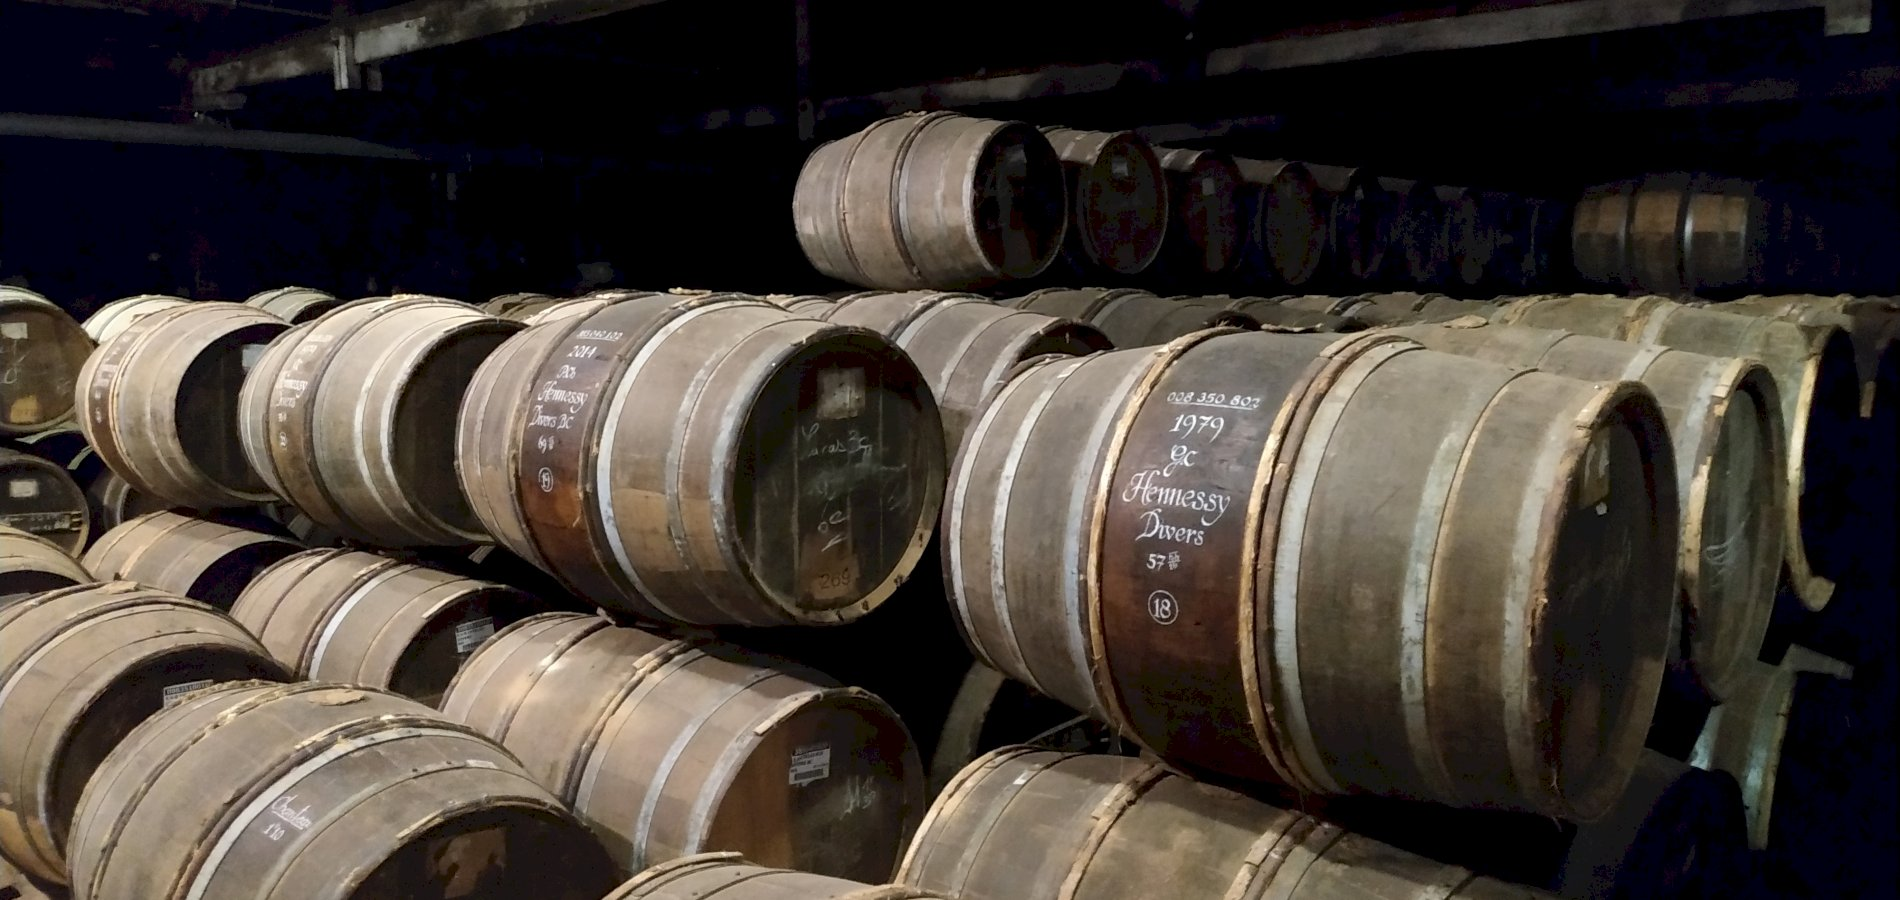 Ophorus Tours - Hennessy Cognac From Grape to Glass Visit & Experience